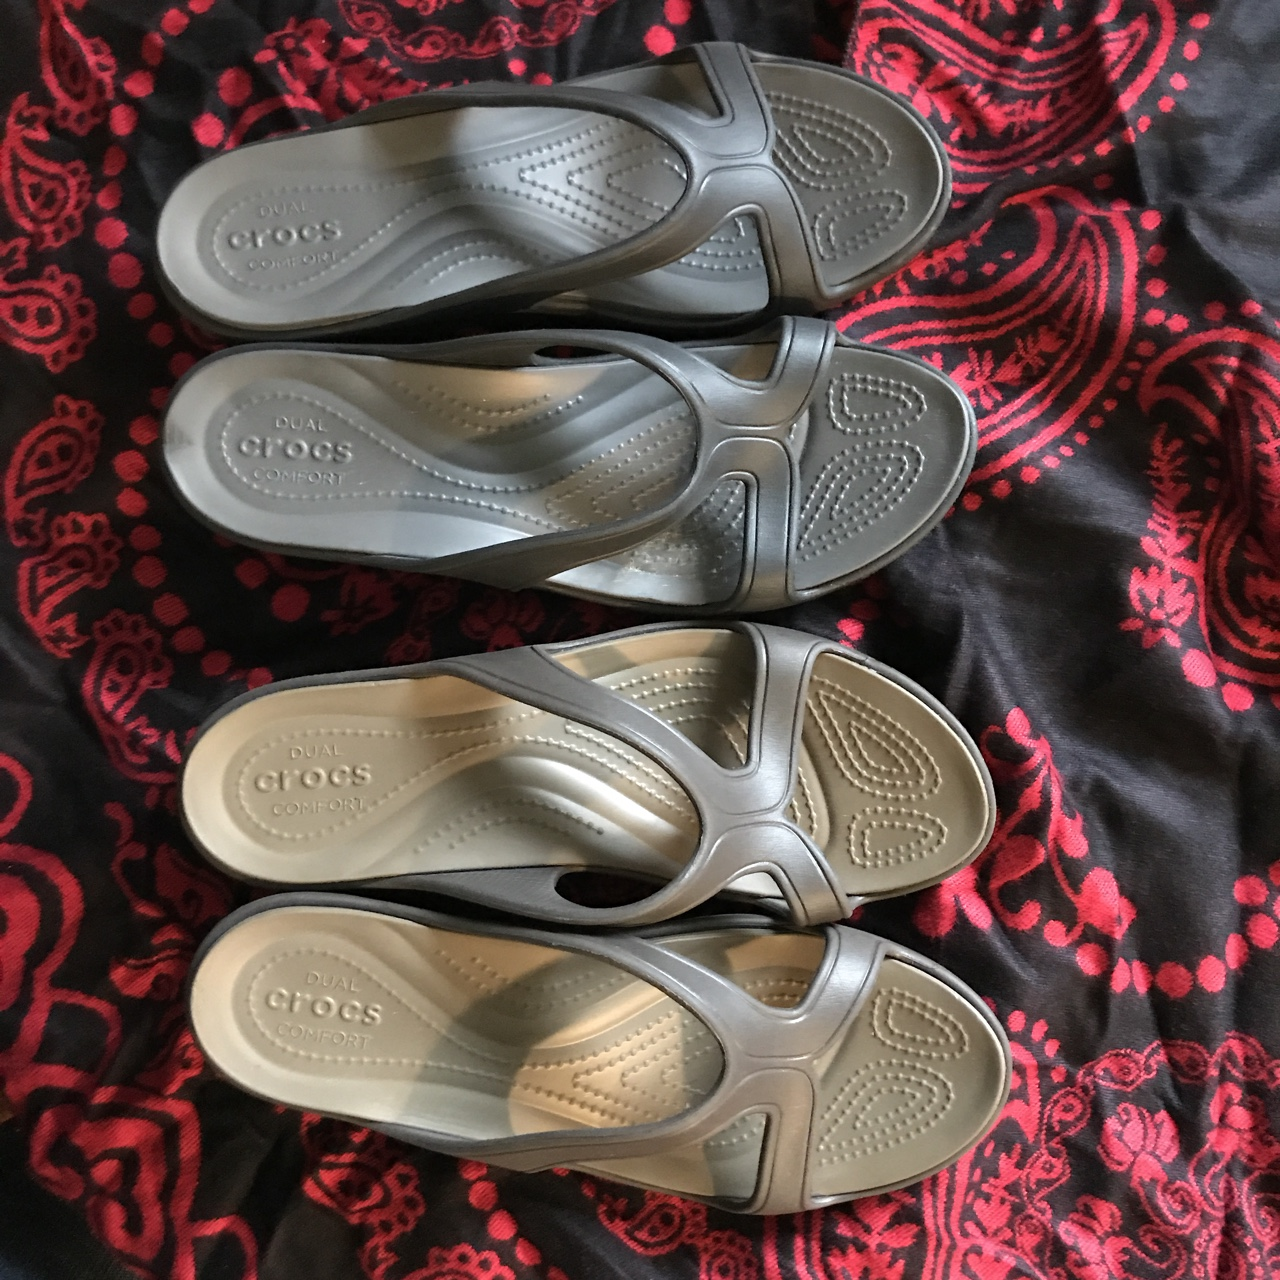 A pair of dual comfort crocs for sale